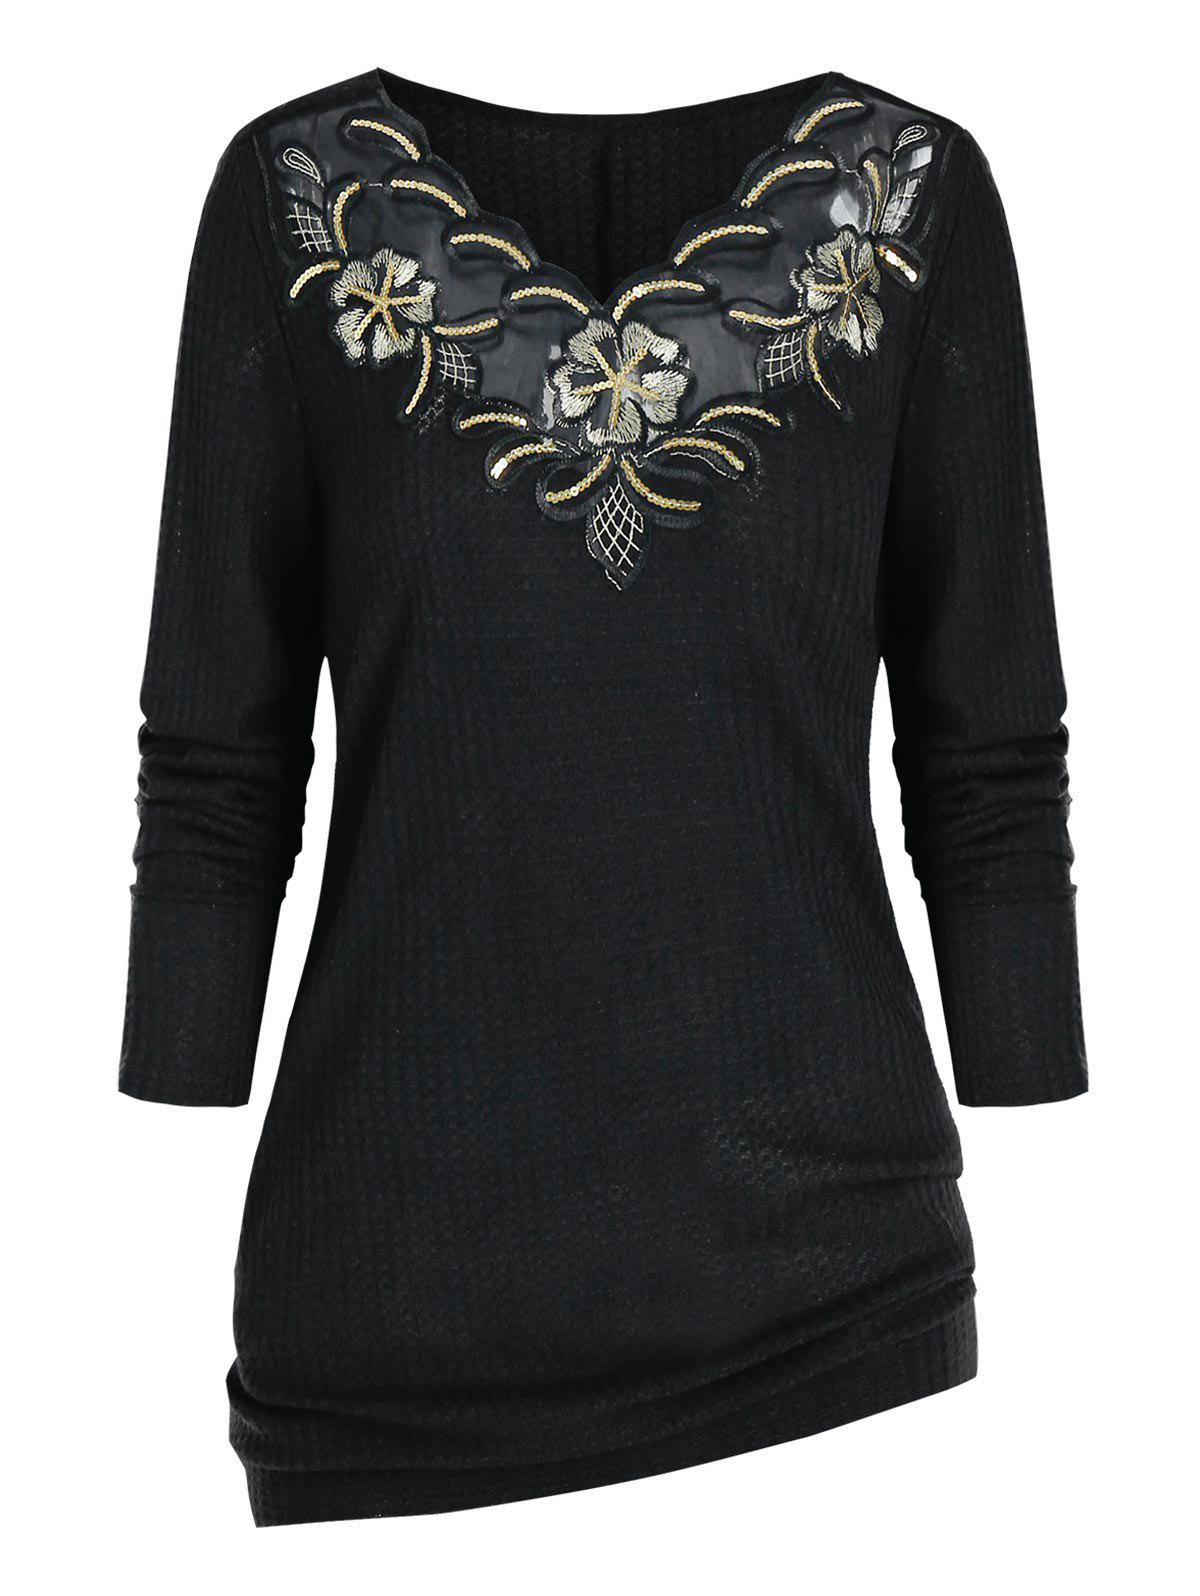 Plus Size Sequin Embroidered Knitwear - BLACK 5X